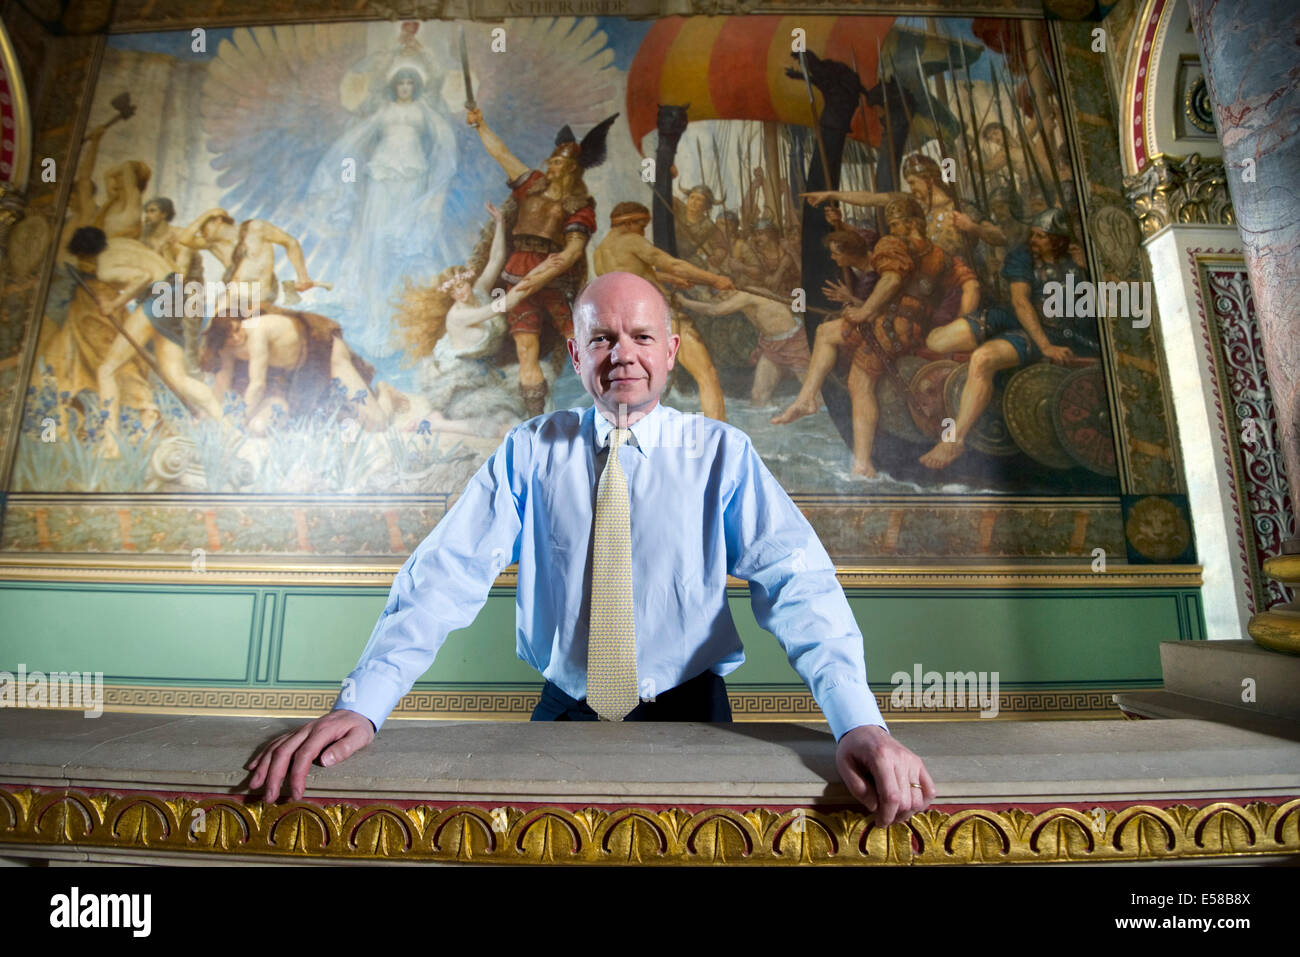 William Hague former Foreign Secretary at the Foreign Office - Stock Image